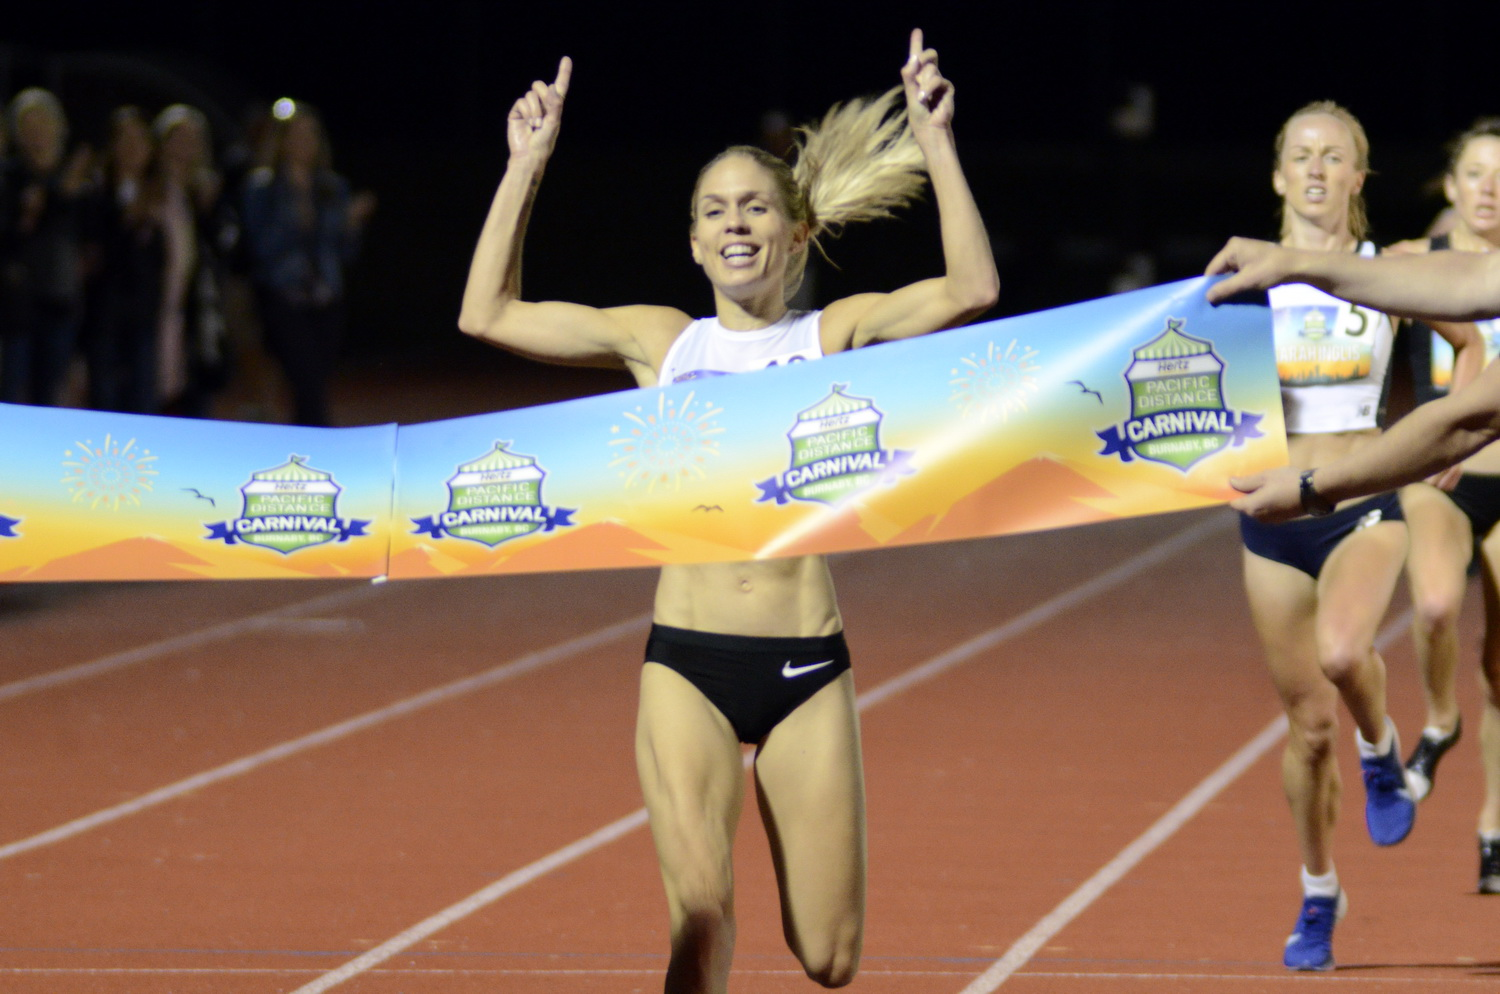 Indelible moments captured at 2019 Pacific Distance Carnival | Athletics Illustrated